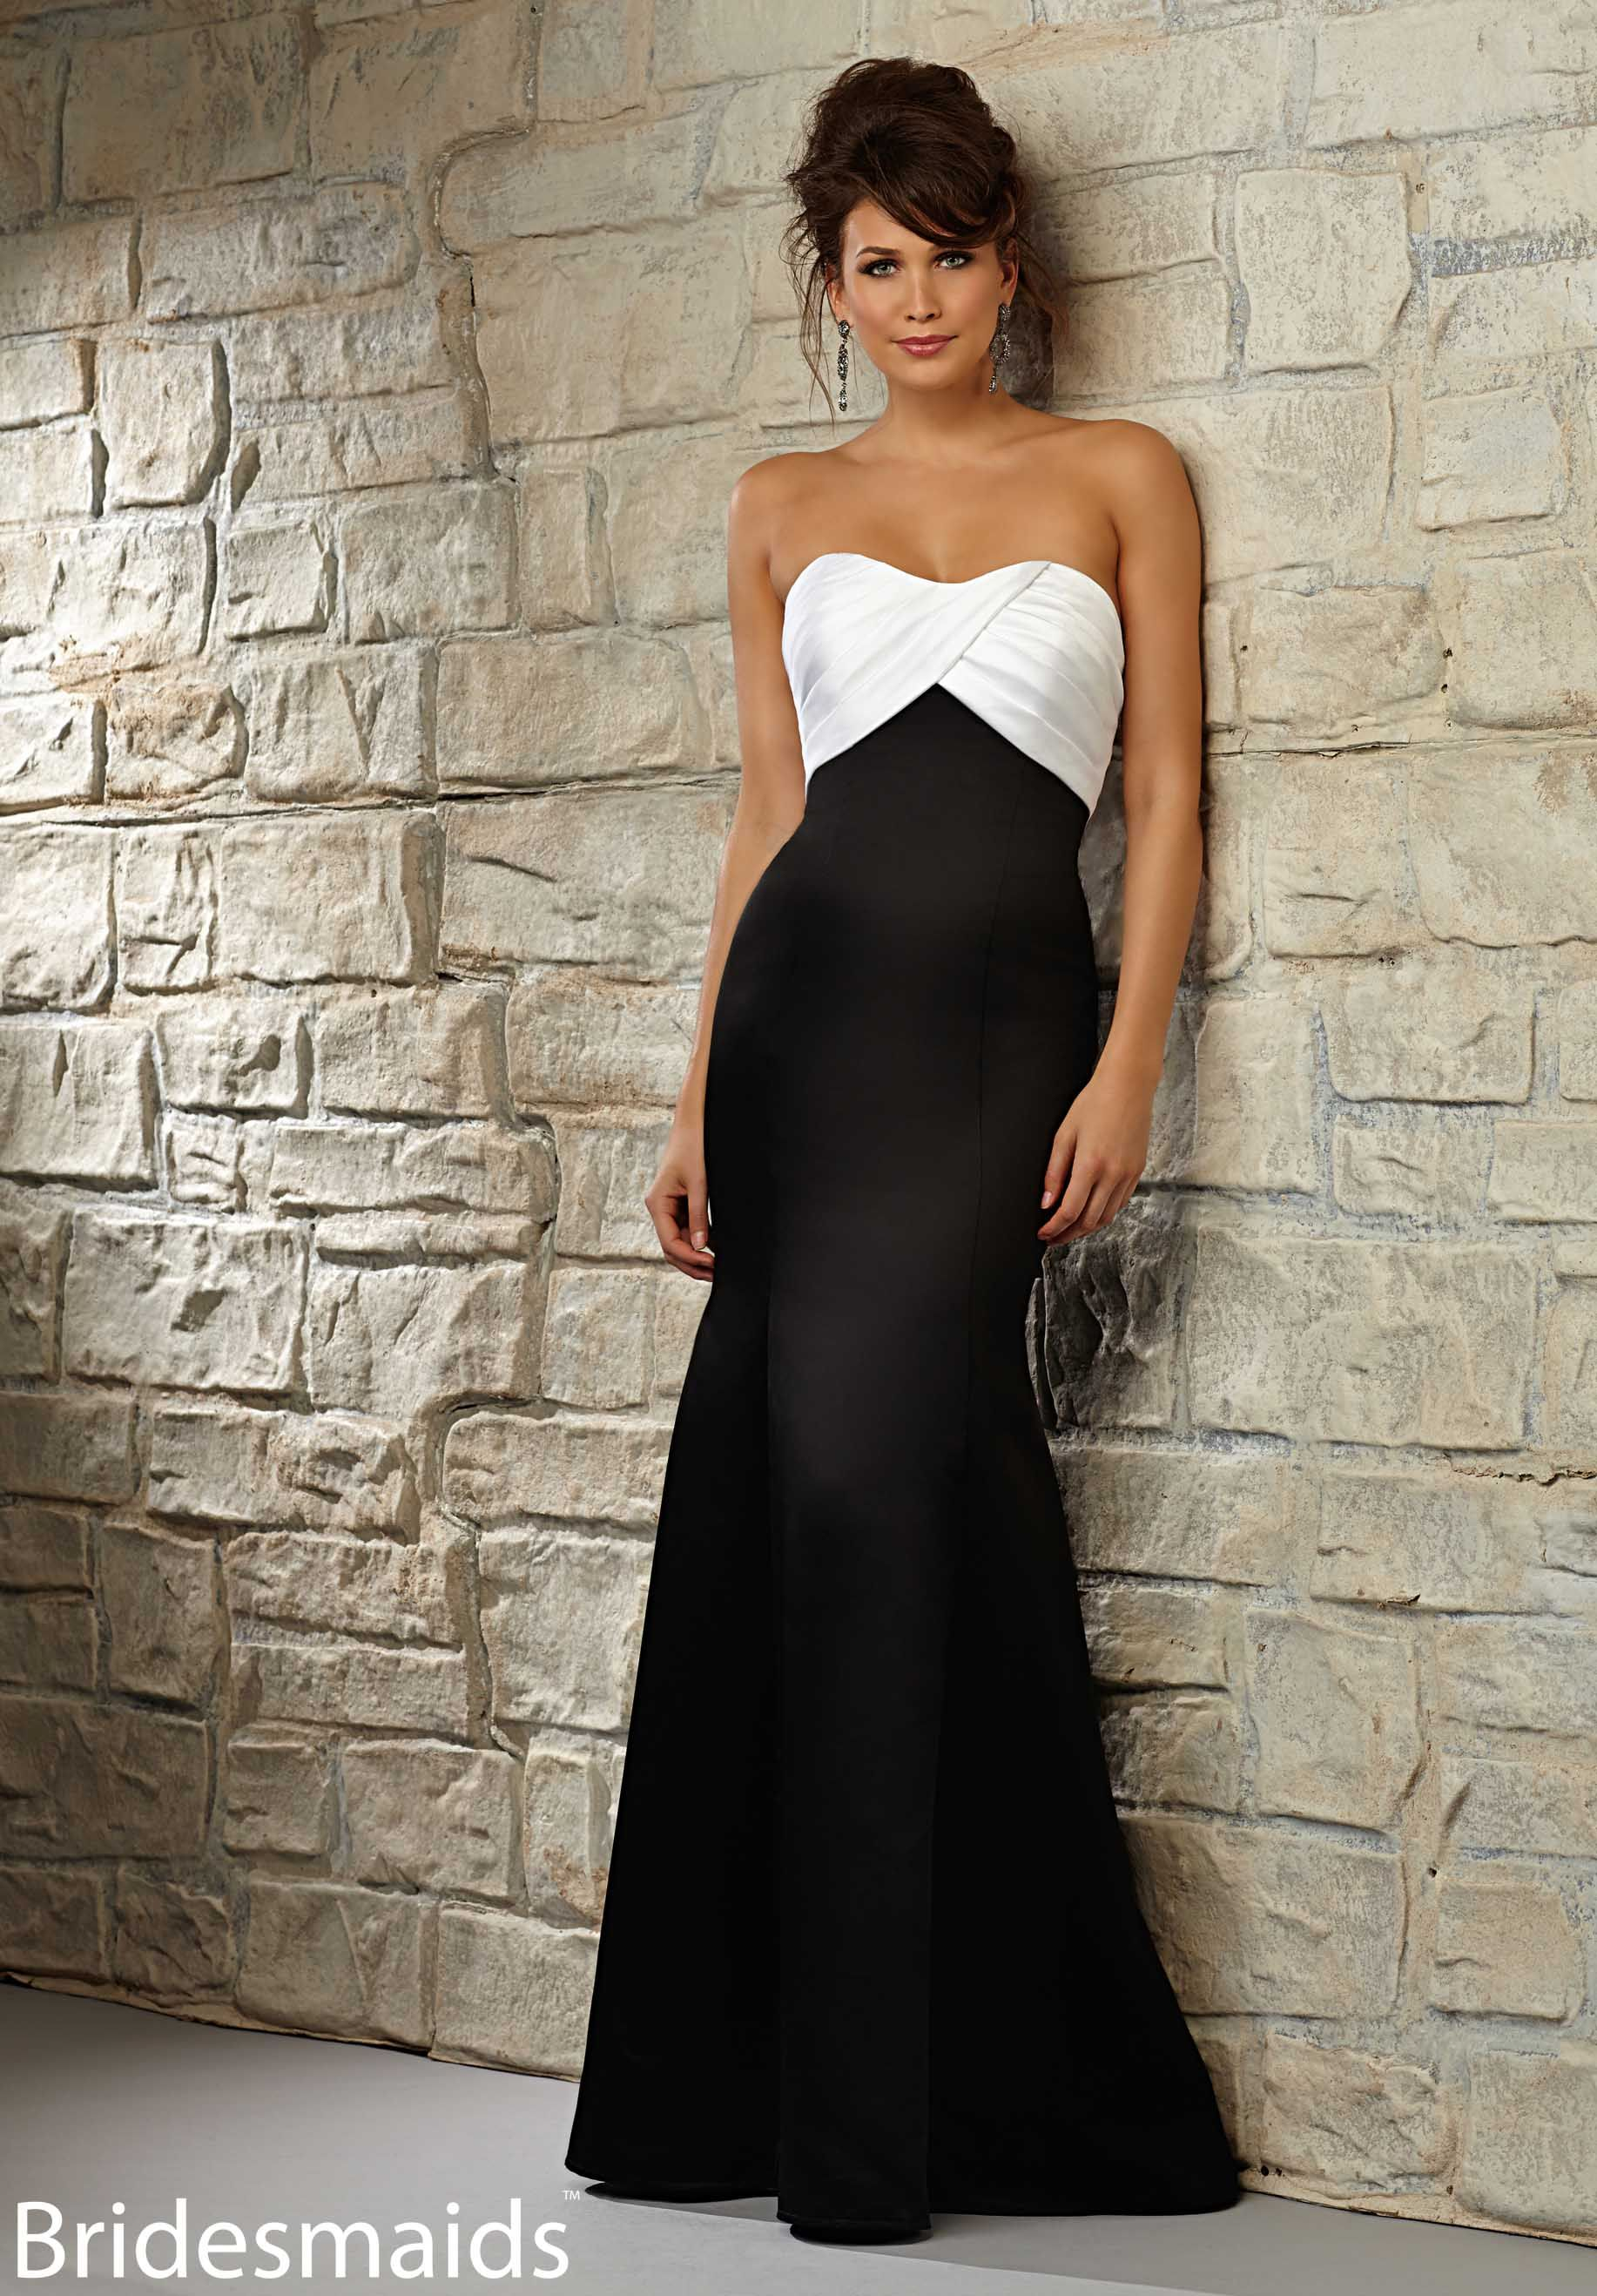 Bridesmaids Dresses Satin Available In White Black Combination Shown Or Any Mori Lee